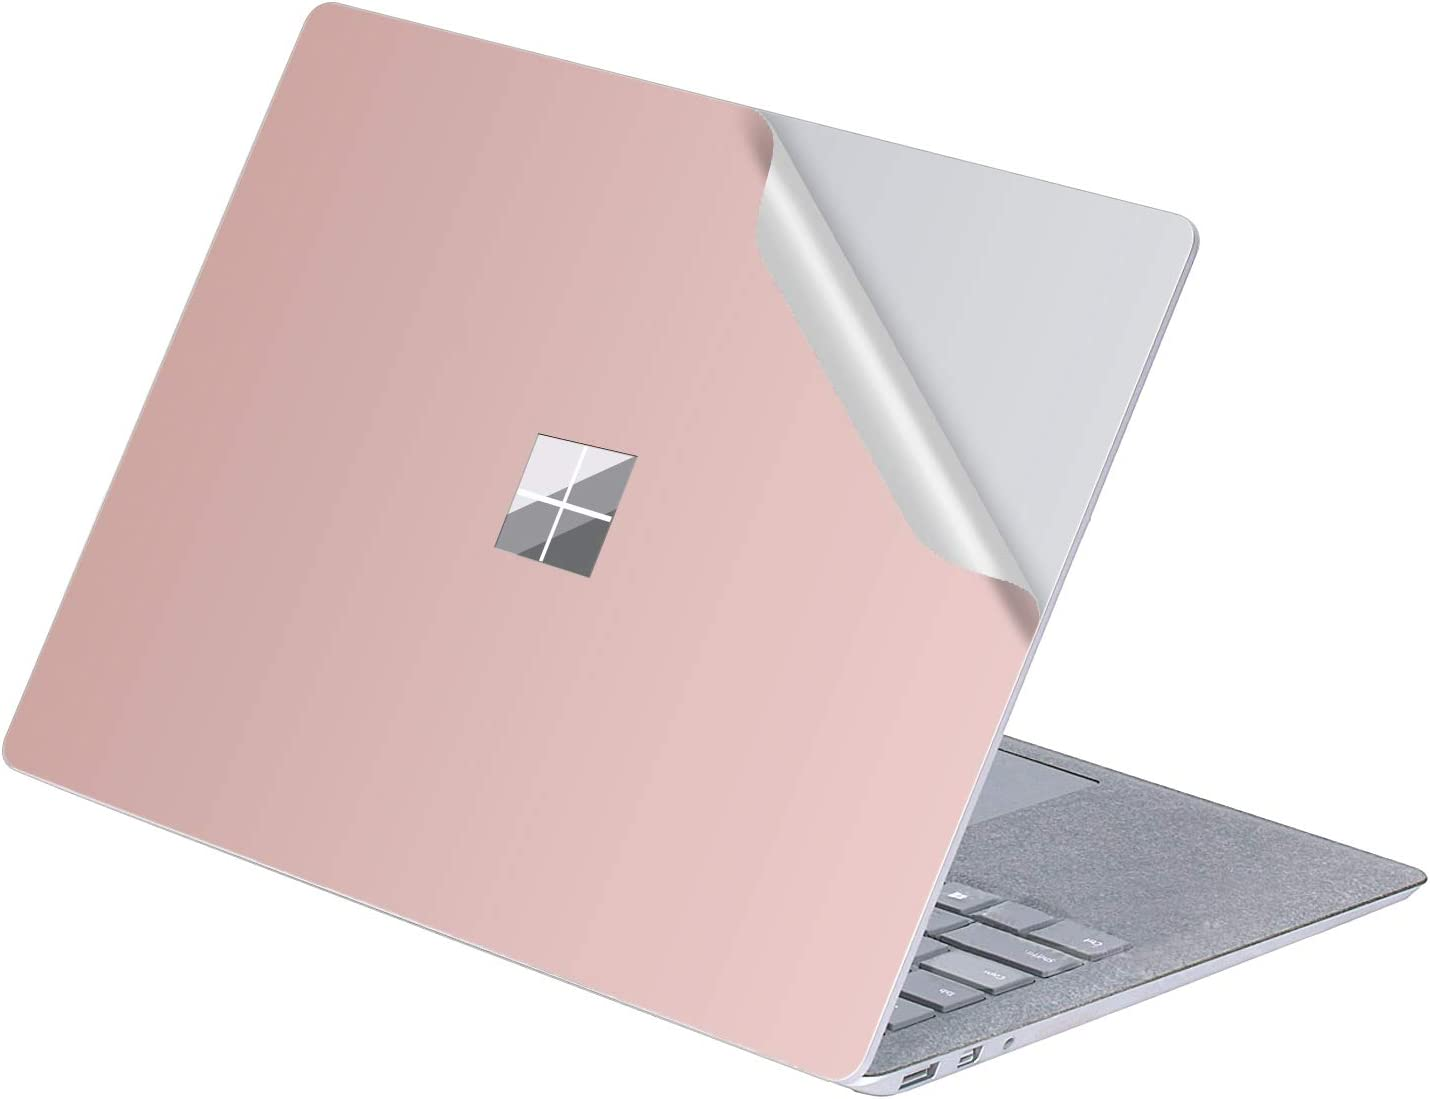 "MasiBloom 1 PCS Protective Decal Sticker Anti-Scratch Vinyl Laptop Cover Skin for 13"" 13.5 inch Microsoft Surface Laptop 3 / 2 / 1 2019 2018 2017 Released (for Surface Laptop,A Pure Color- Rose Gold)"